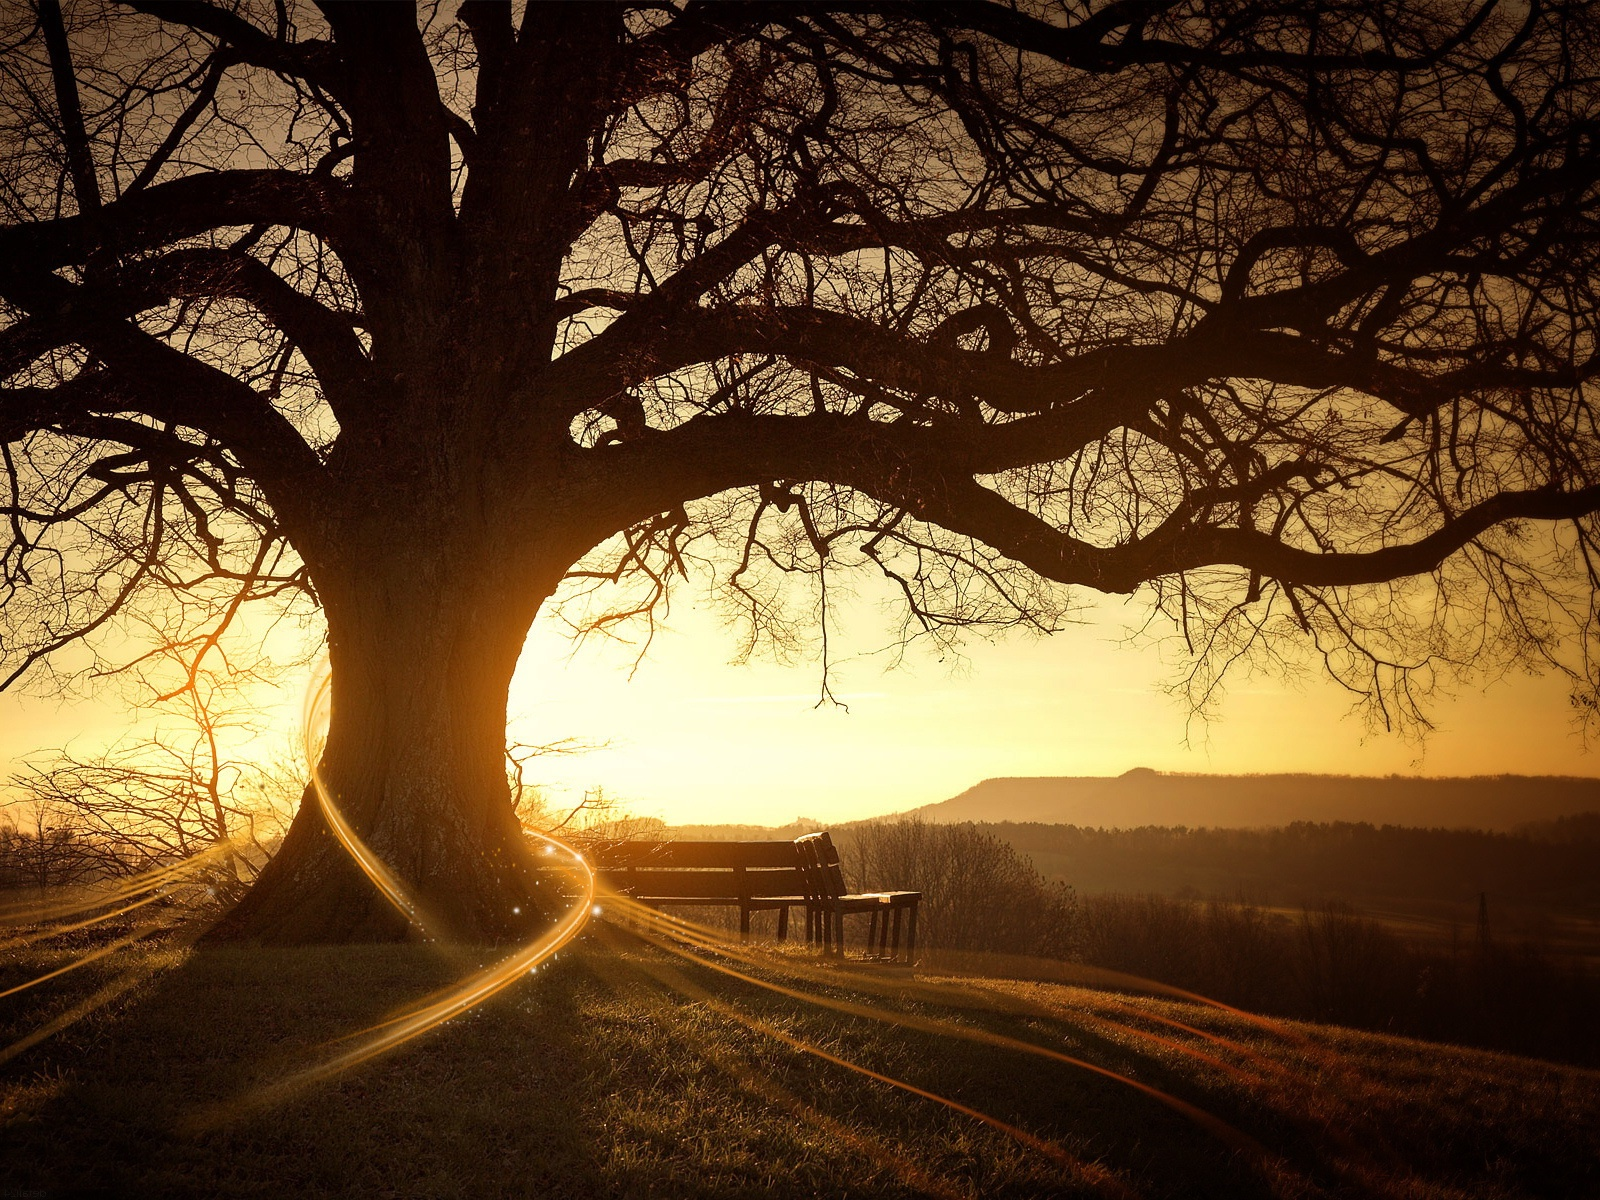 Big Tree with Sunset Landscape View wallpaper